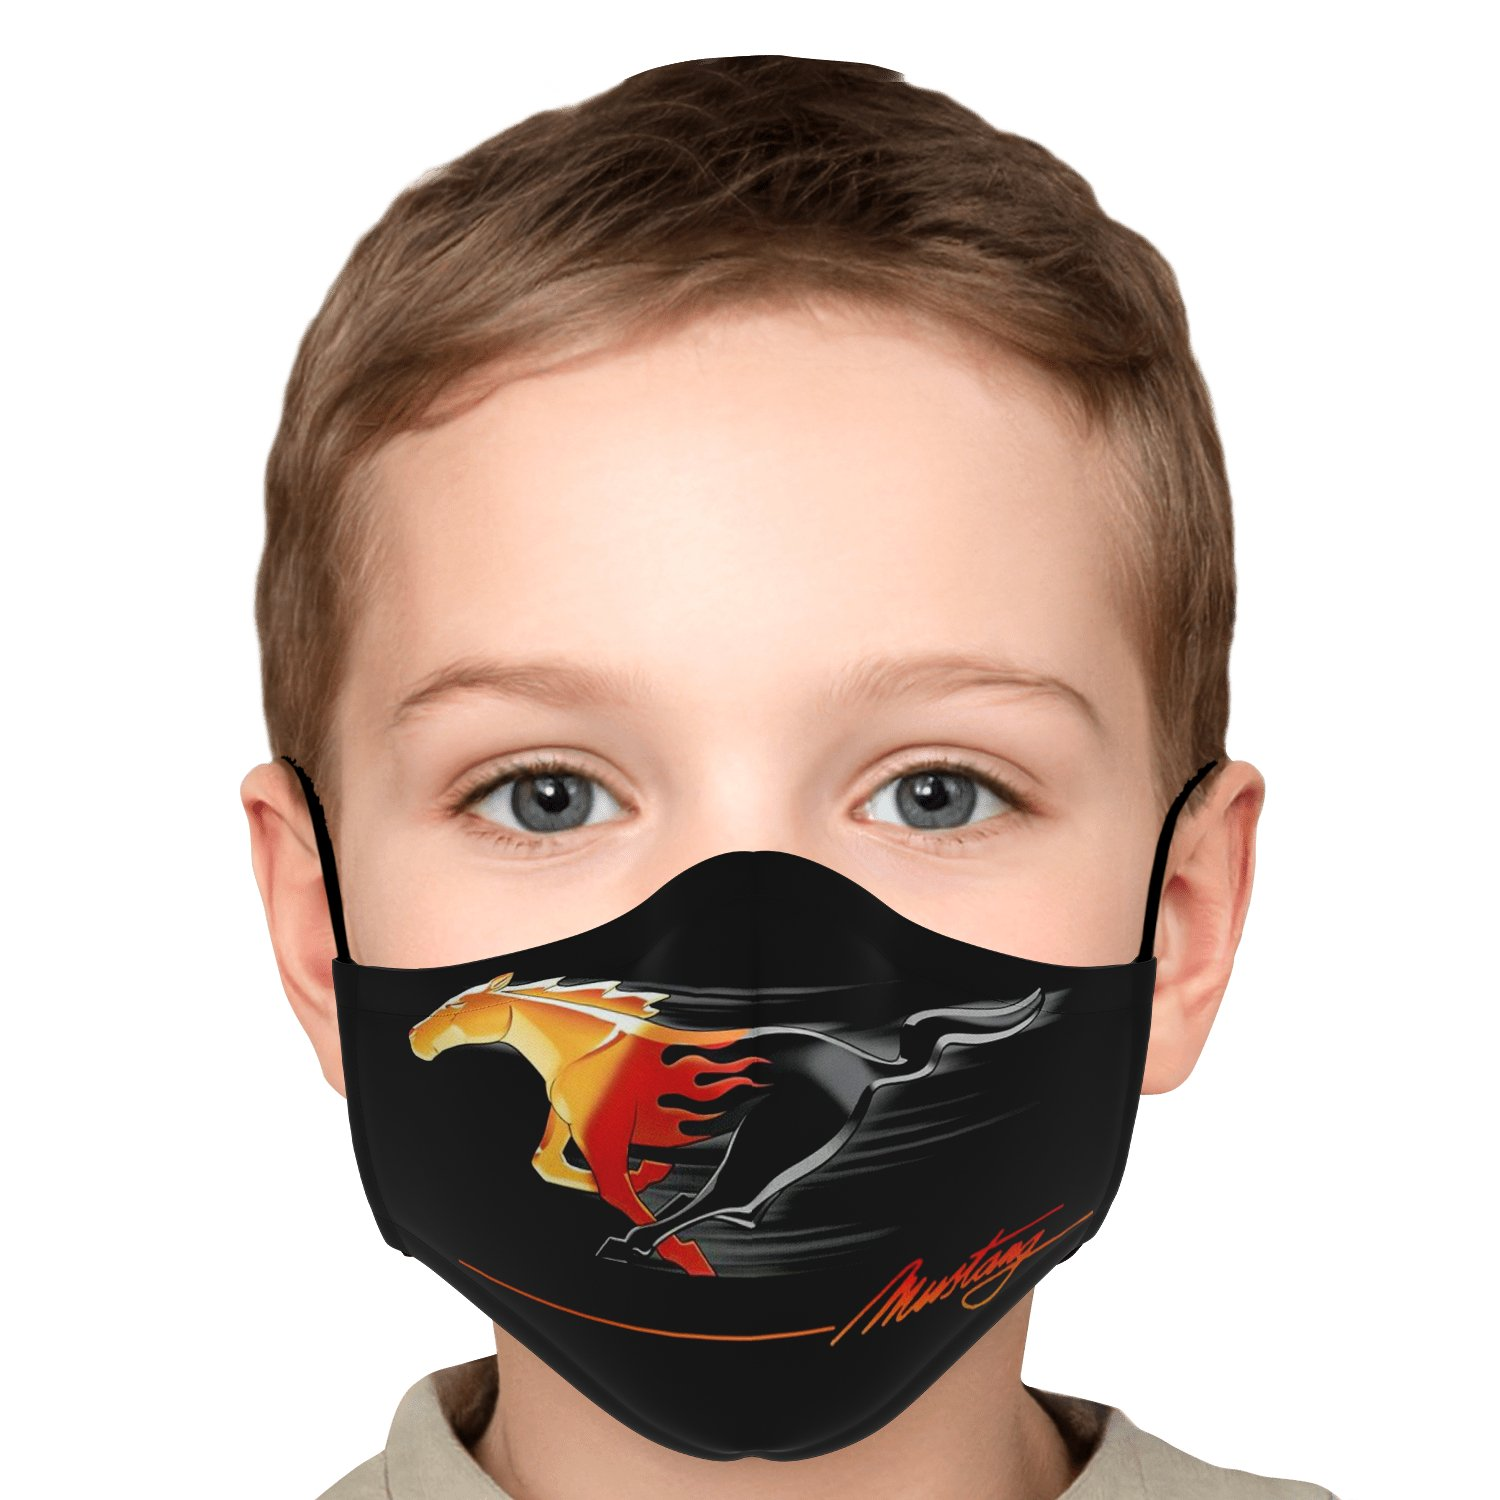 Mustang Face Mask 6